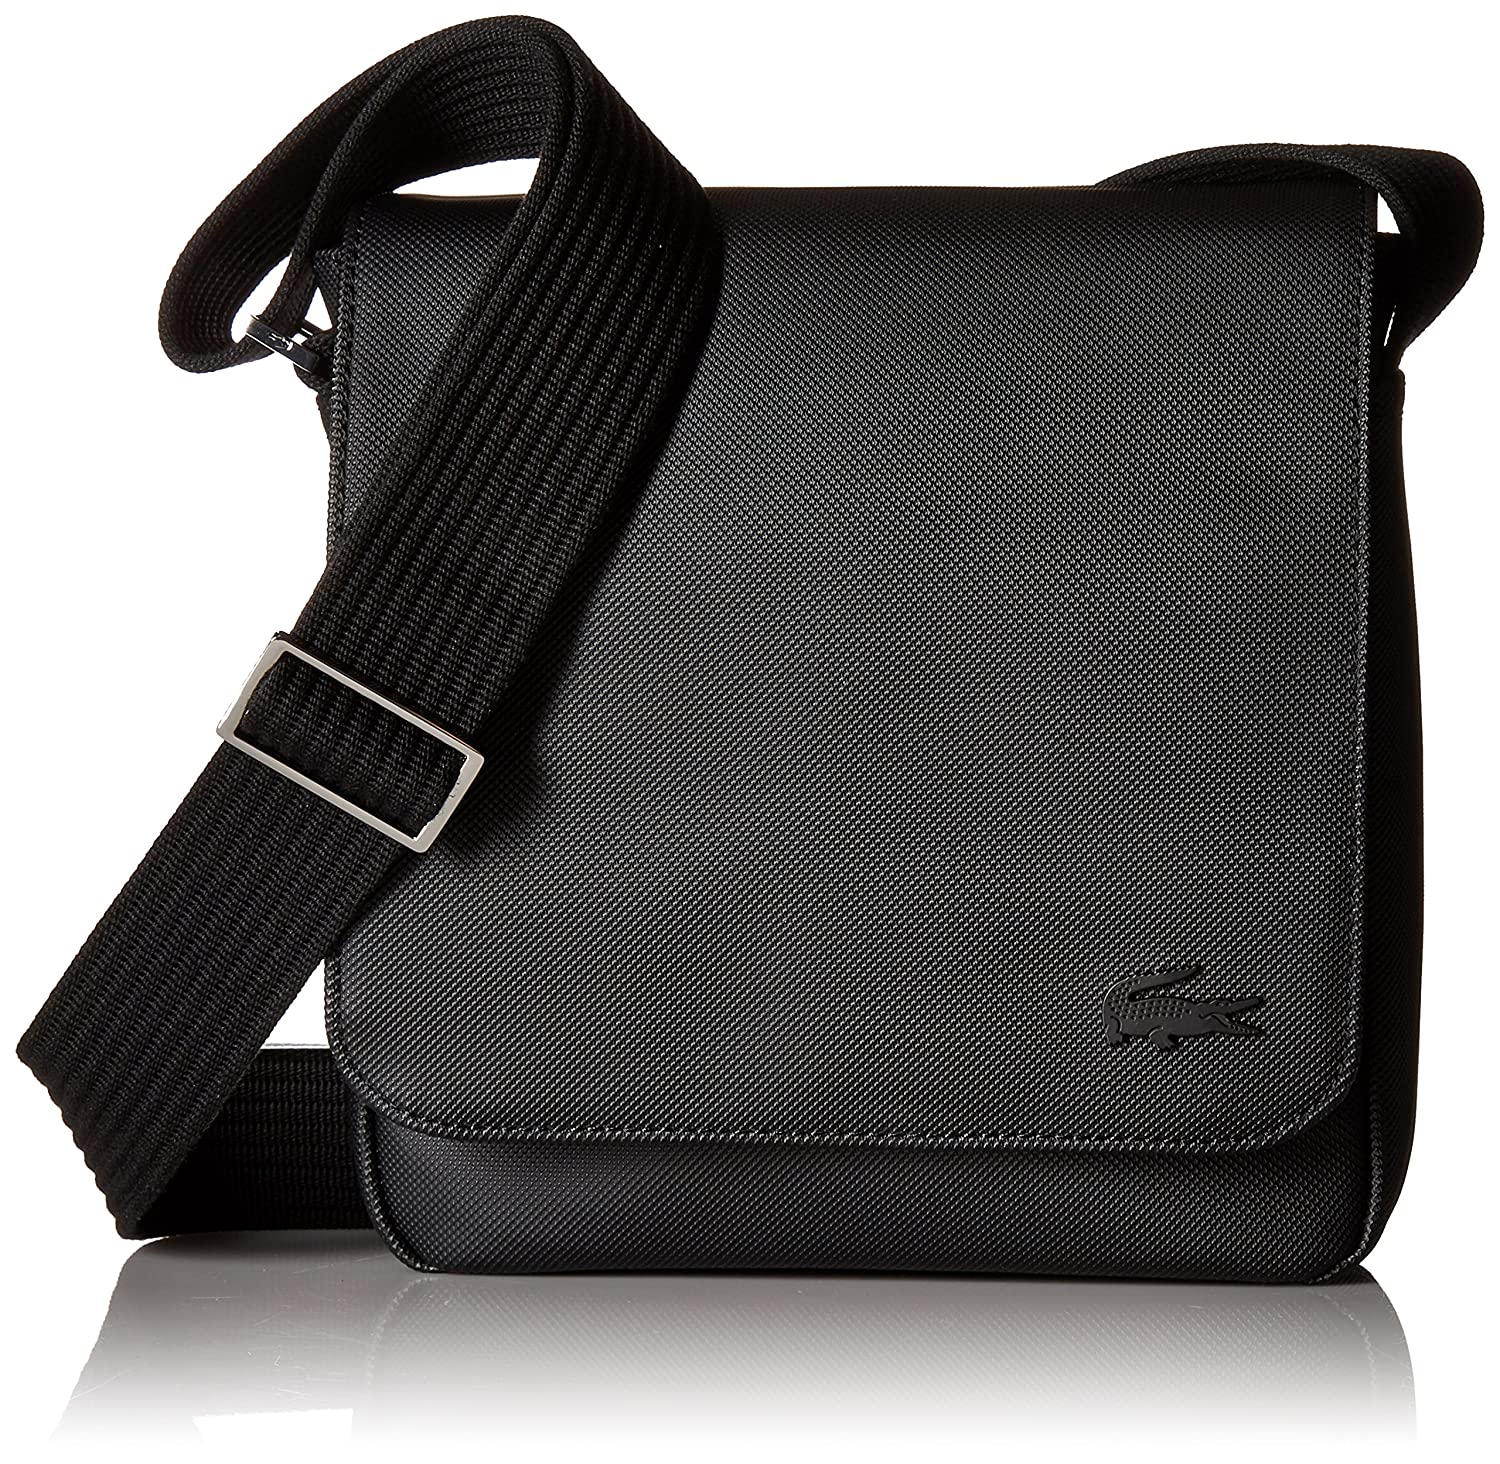 fb702160 Lacoste Men's Flap Crossover Bag